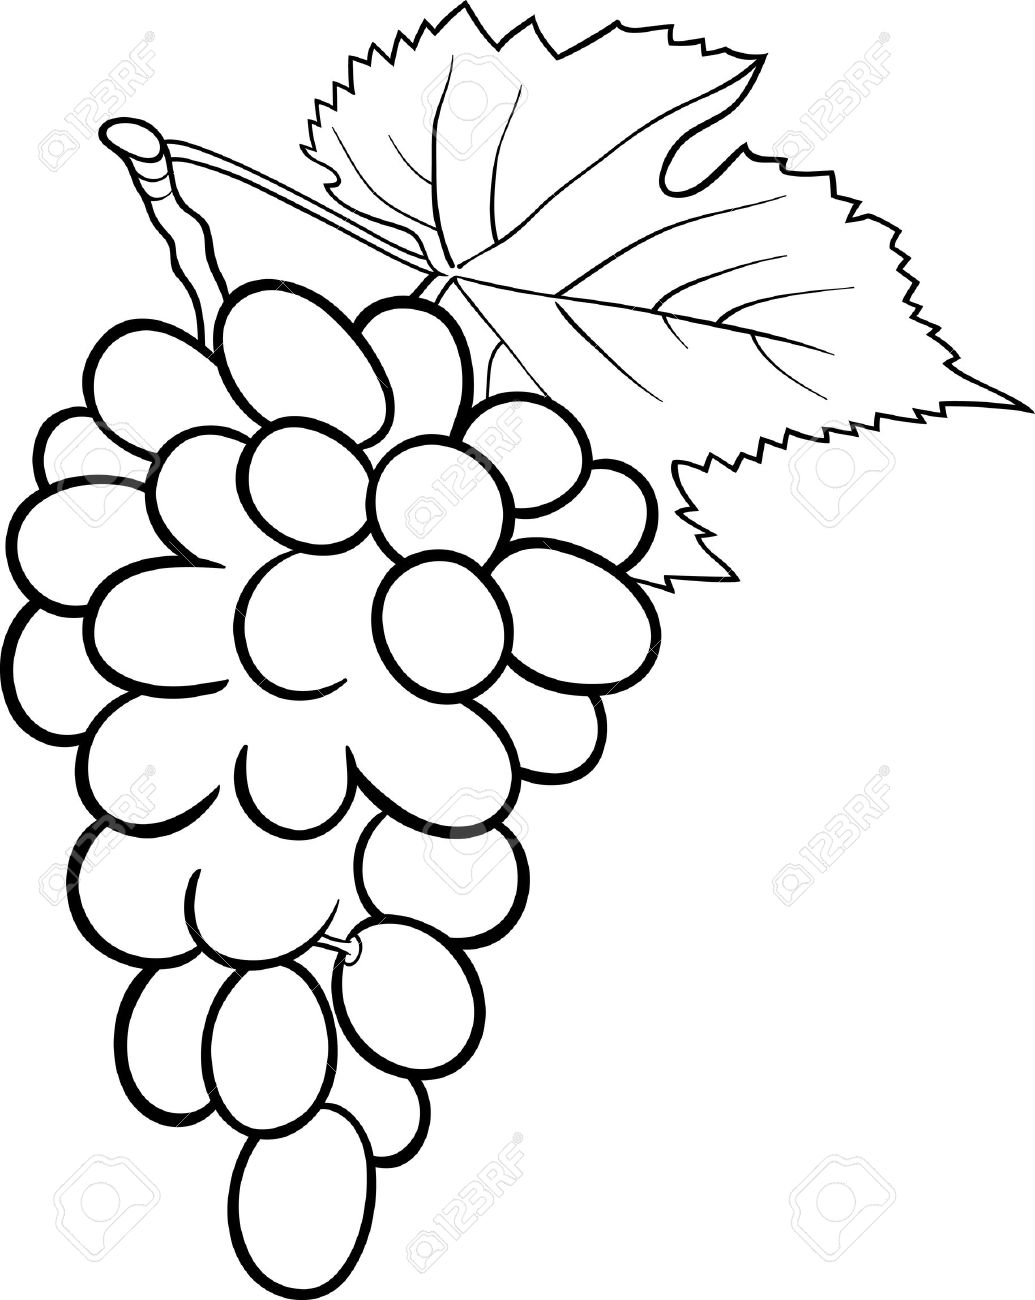 1035x1300 Grapes Clipart Black And White